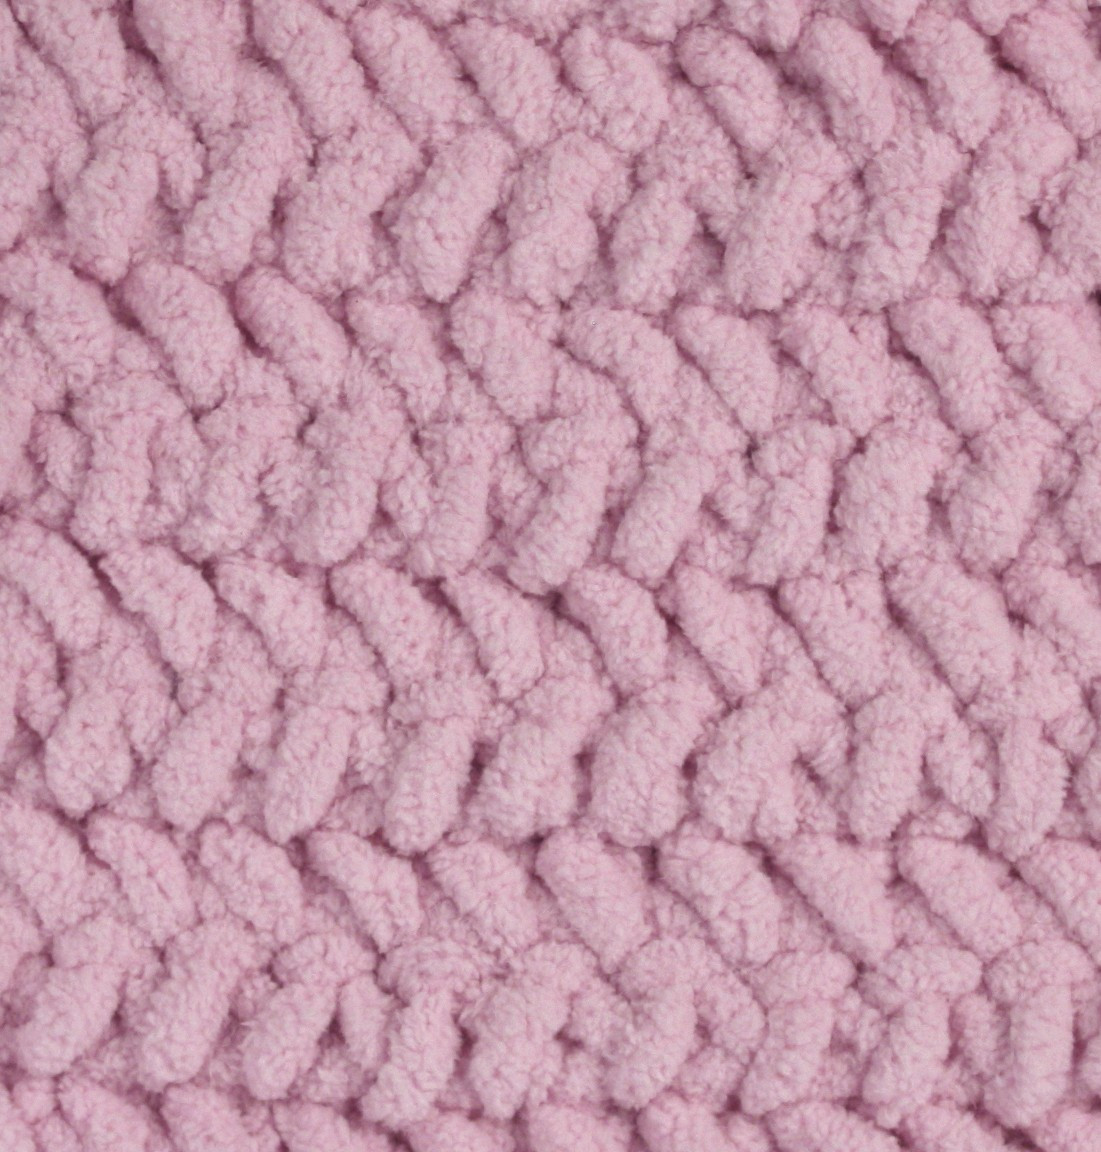 Blanket Yarn Patterns Awesome Yarnspirations Of Superb 45 Pictures Blanket Yarn Patterns